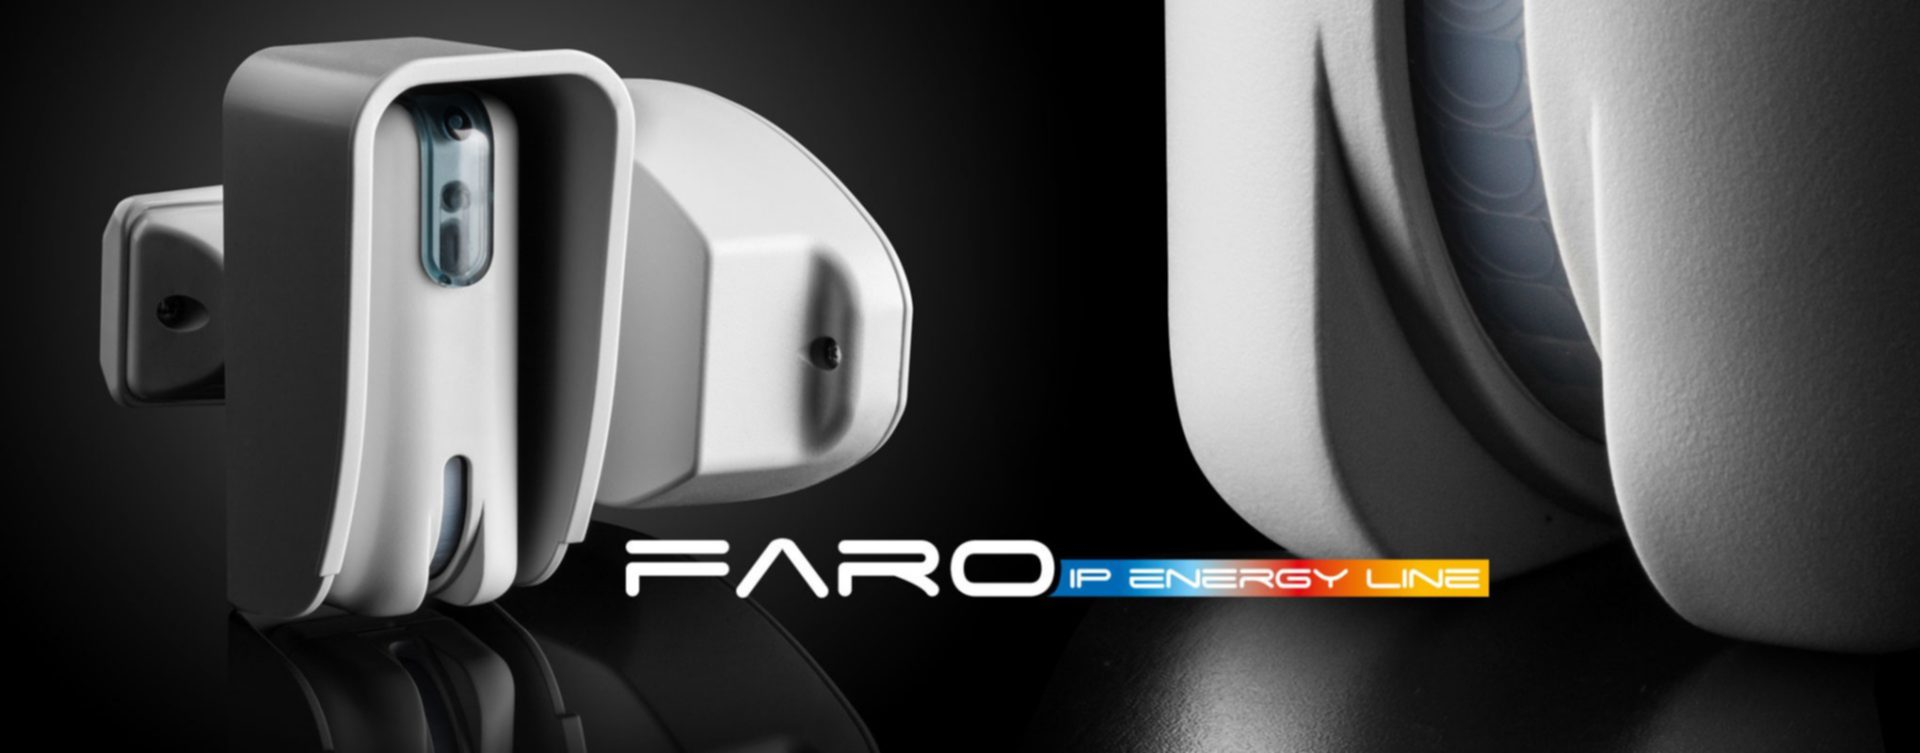 Faro IP Energy Line | Rilevatore di presenza wireless